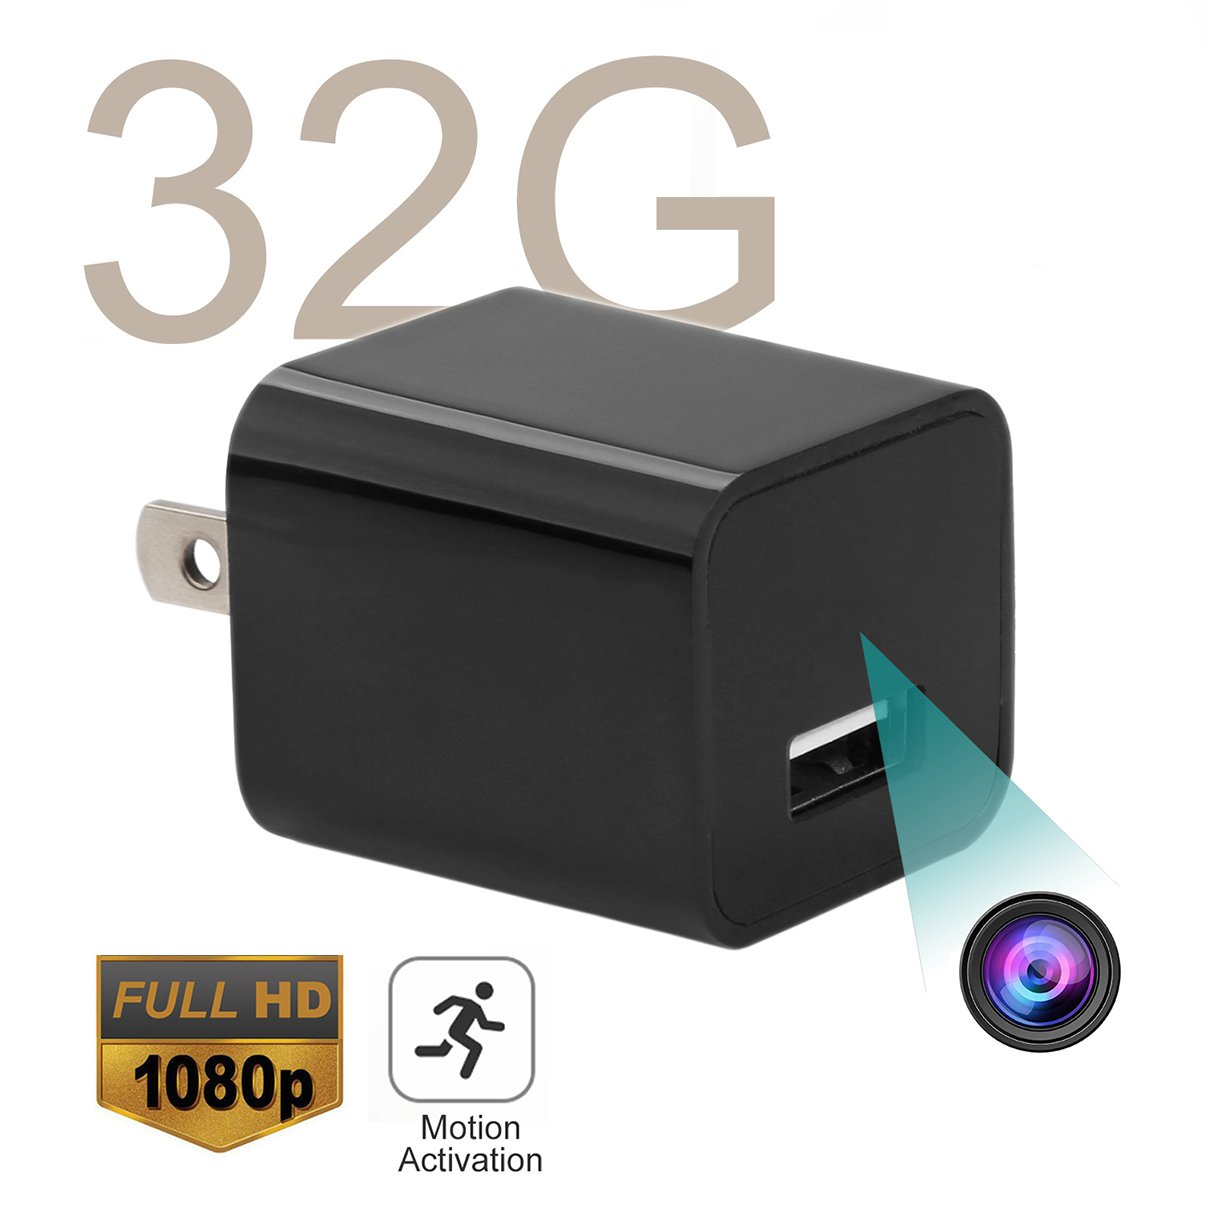 USB Hidden Spy Camera - ABOUR 32GB 1080P HD Motion Activated USB Mini Spy Cameras Personal Security Video Recorder